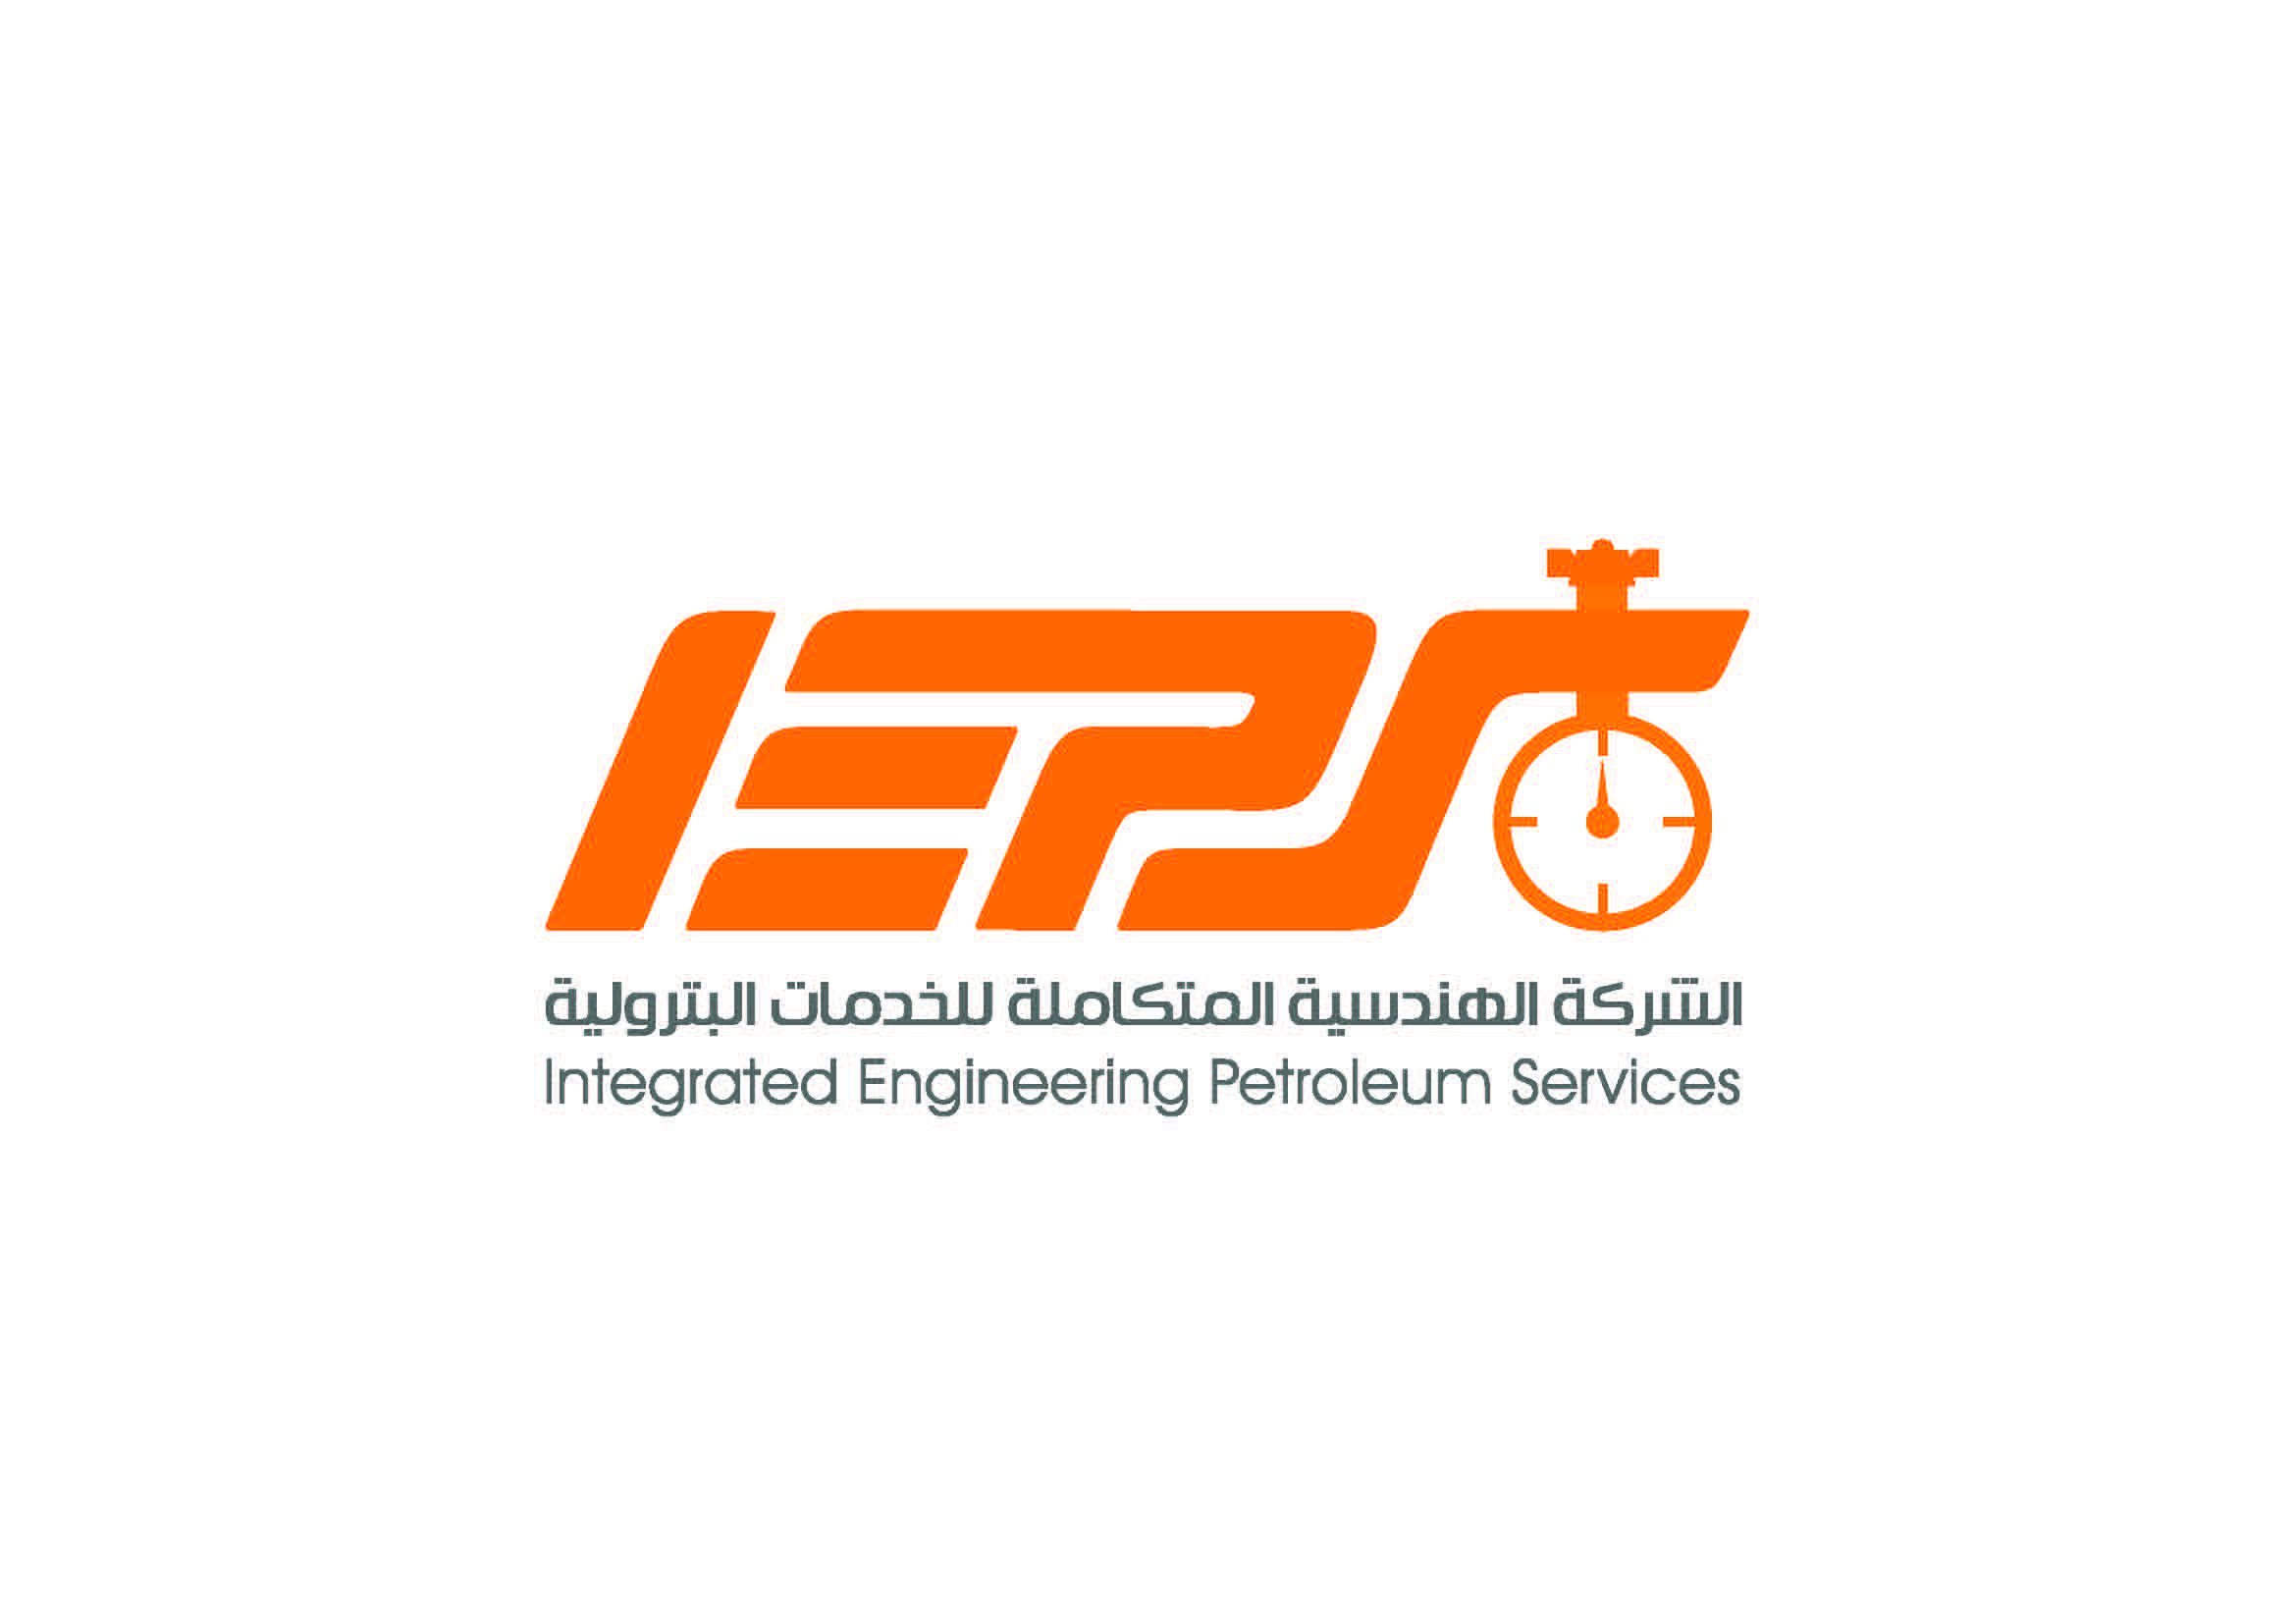 IEPS (Integrated Engineering Petroleum Services)